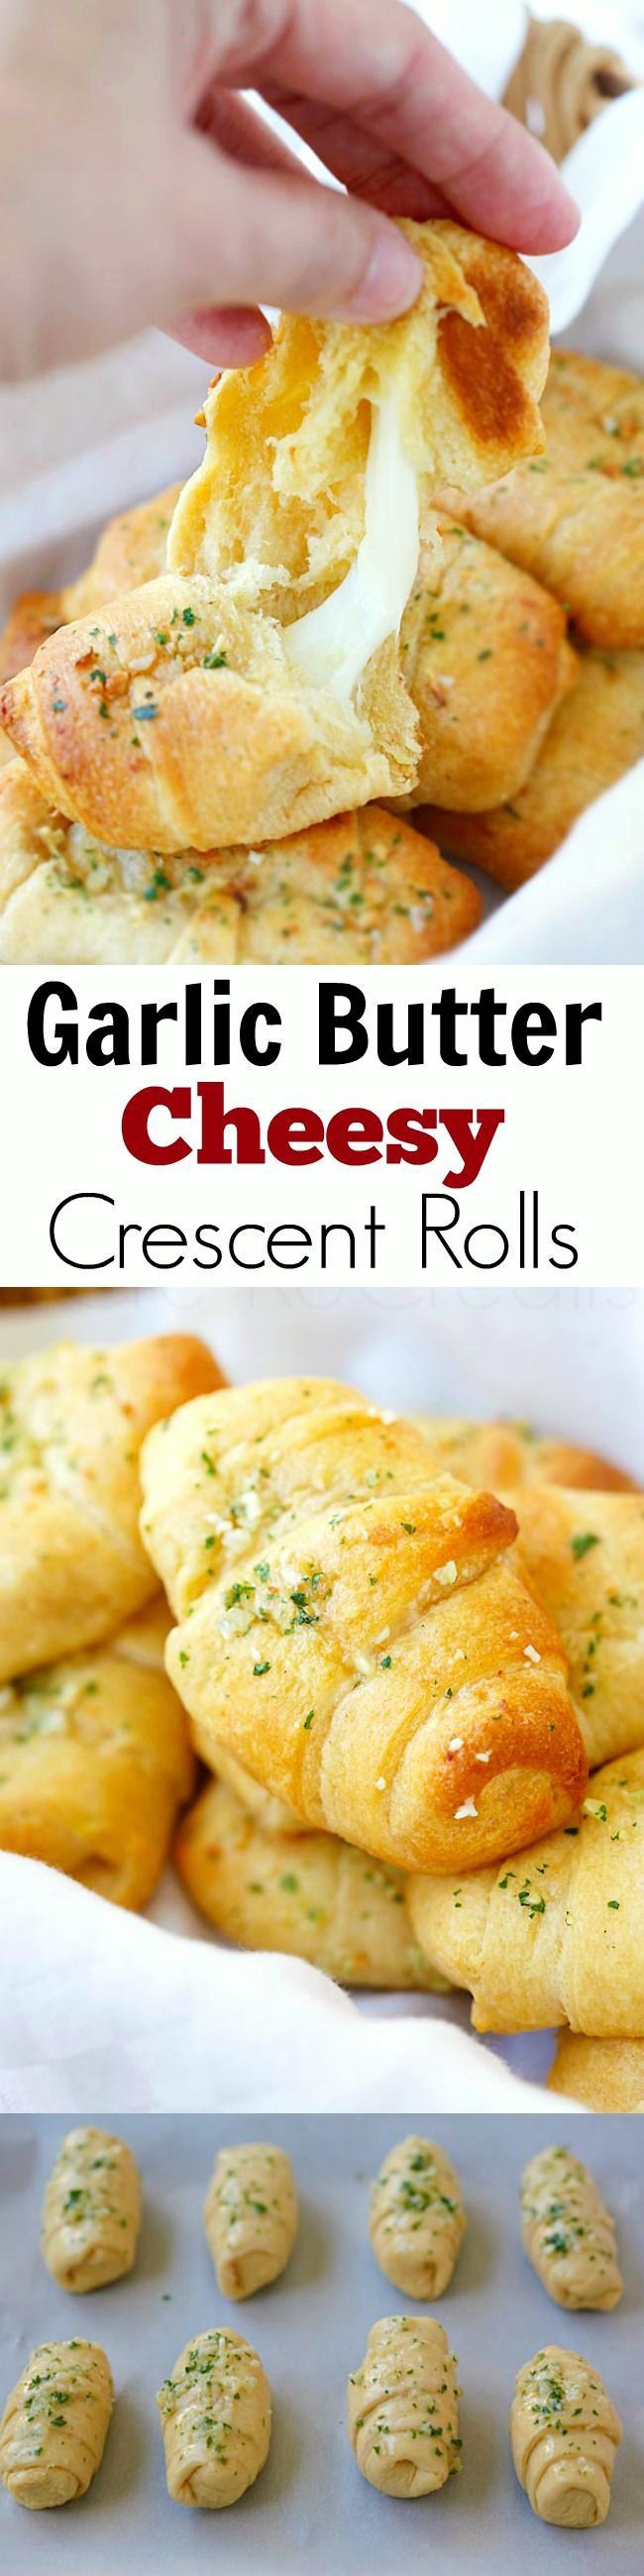 Irresistible (and easy) Garlic Butter Cheesy Roll Recipe